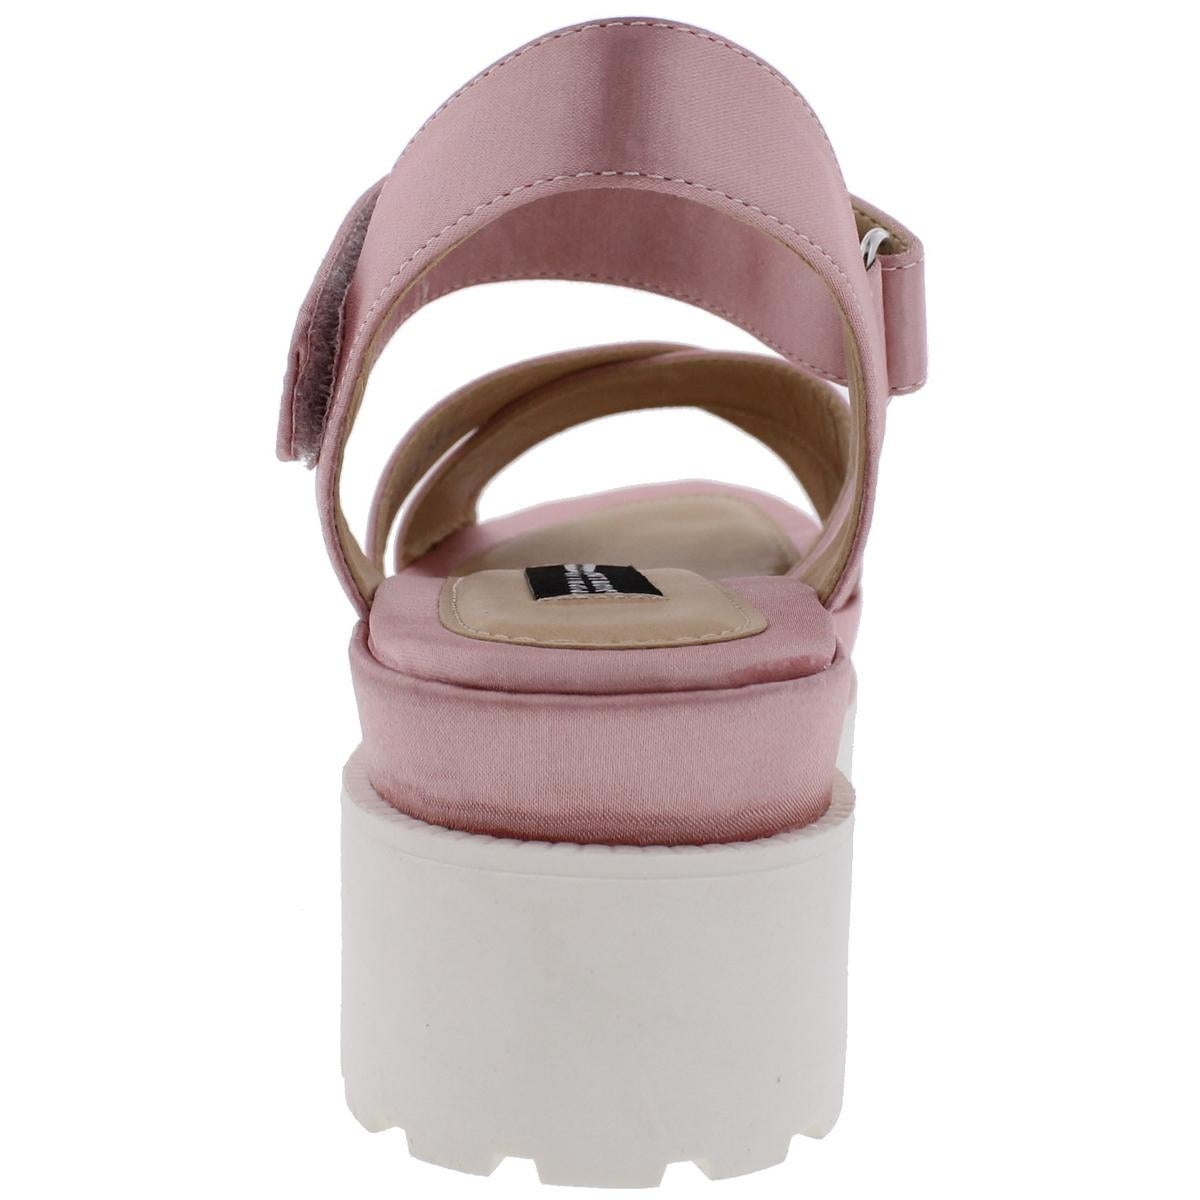 2d53a0c3c0b5 Shop Design Lab Womens Faima Platform Sandals Satin Casual - Free Shipping  On Orders Over  45 - Overstock - 21220902